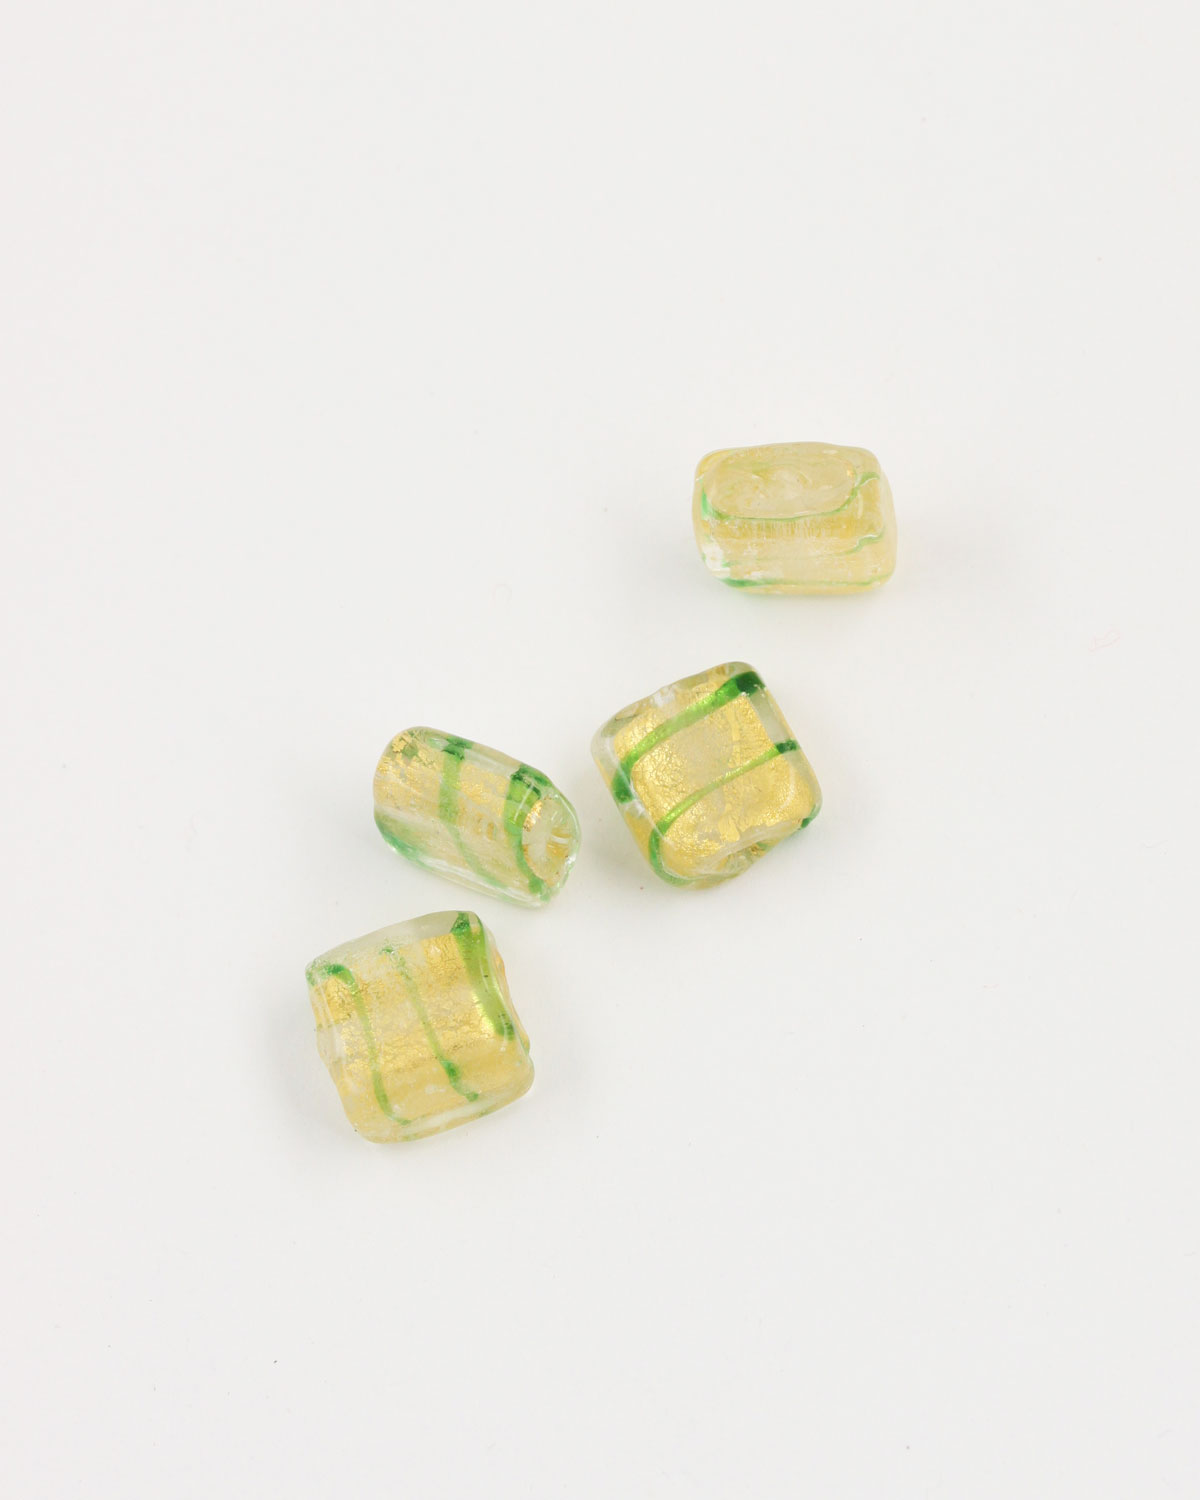 Flat Square Handmade Bead 12x12mm